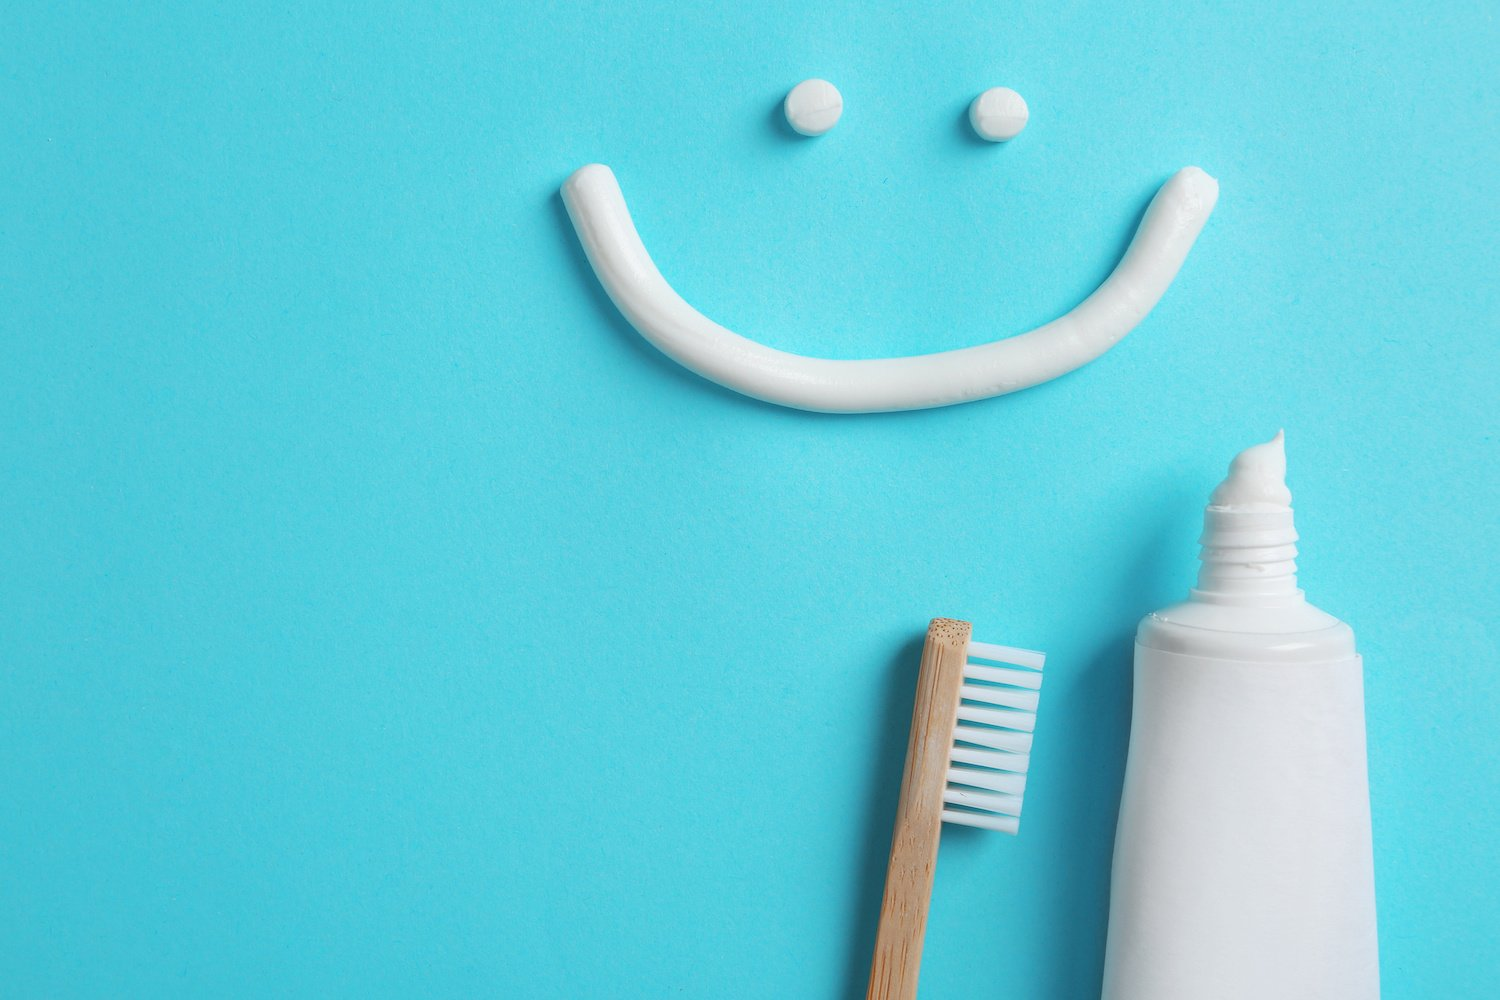 How Does Teeth Whitening Toothpaste Work? Your Guide To The Basics